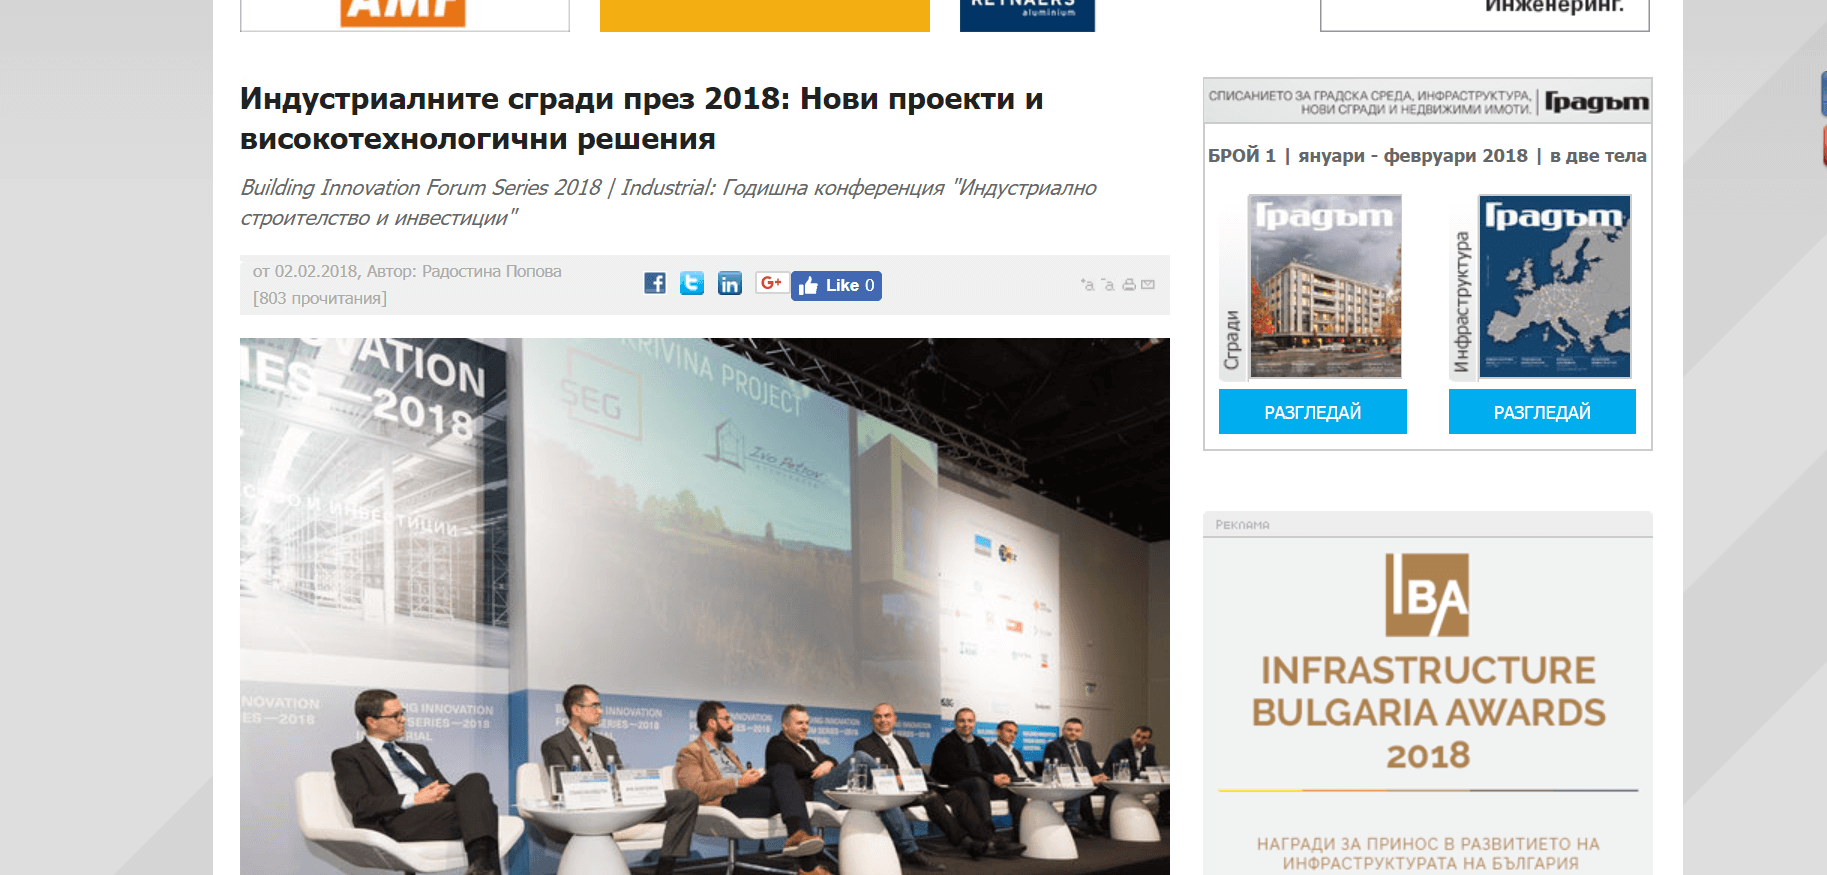 Architect Vladislav Dechev from SGI participated in a conference on Industrial Buildings in 2018